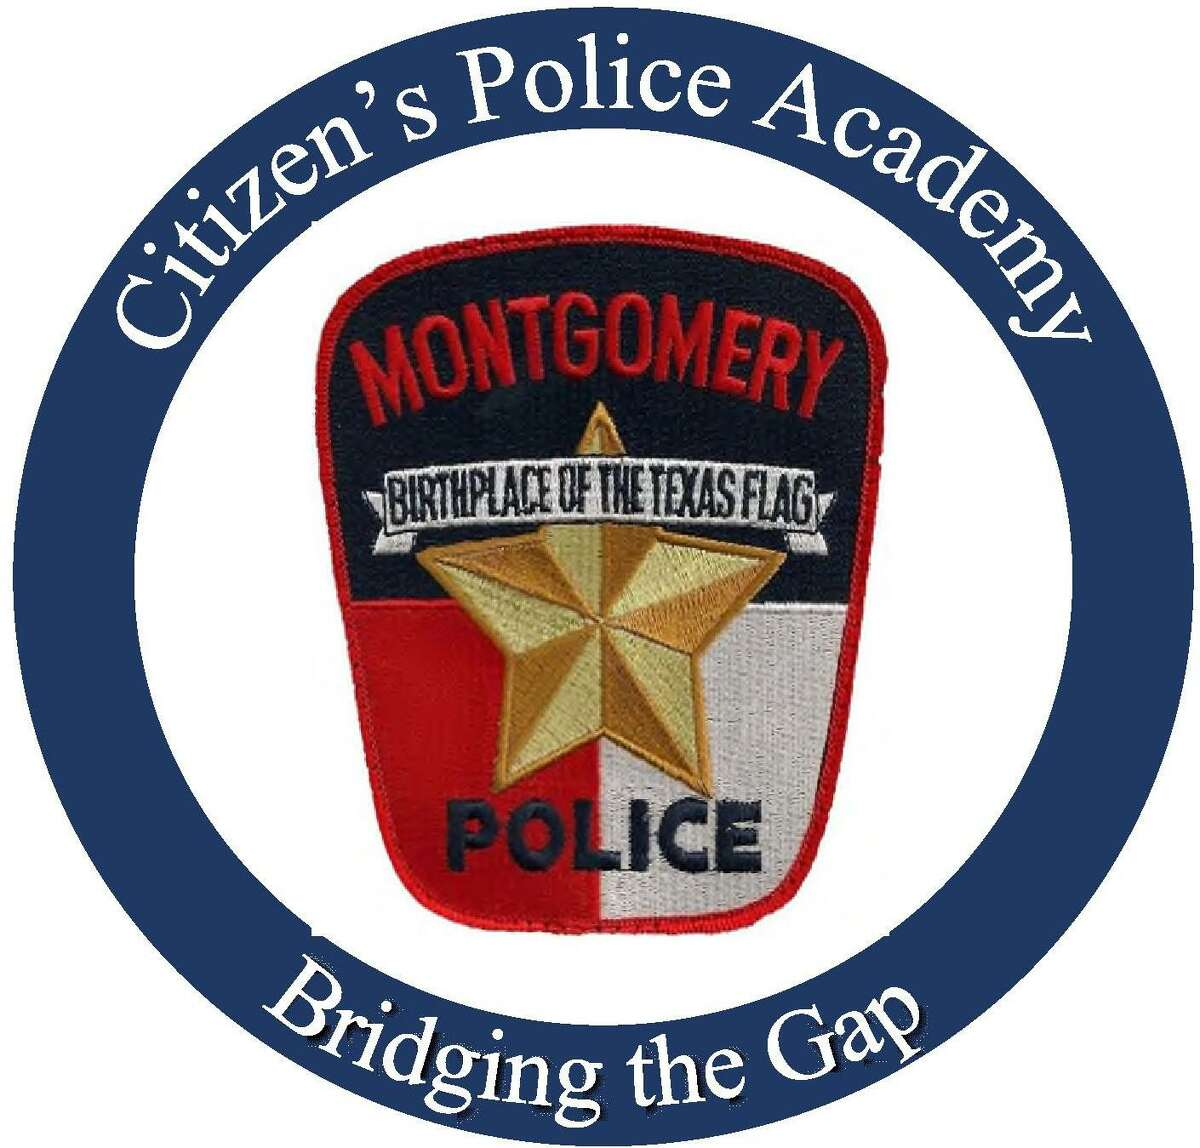 The Montgomery Police Department announces an upcoming Citizen's Police Academy. Any citizen in Montgomery or the surrounding area is welcome and encouraged to participate in this inside look into the Montgomery Police Department.